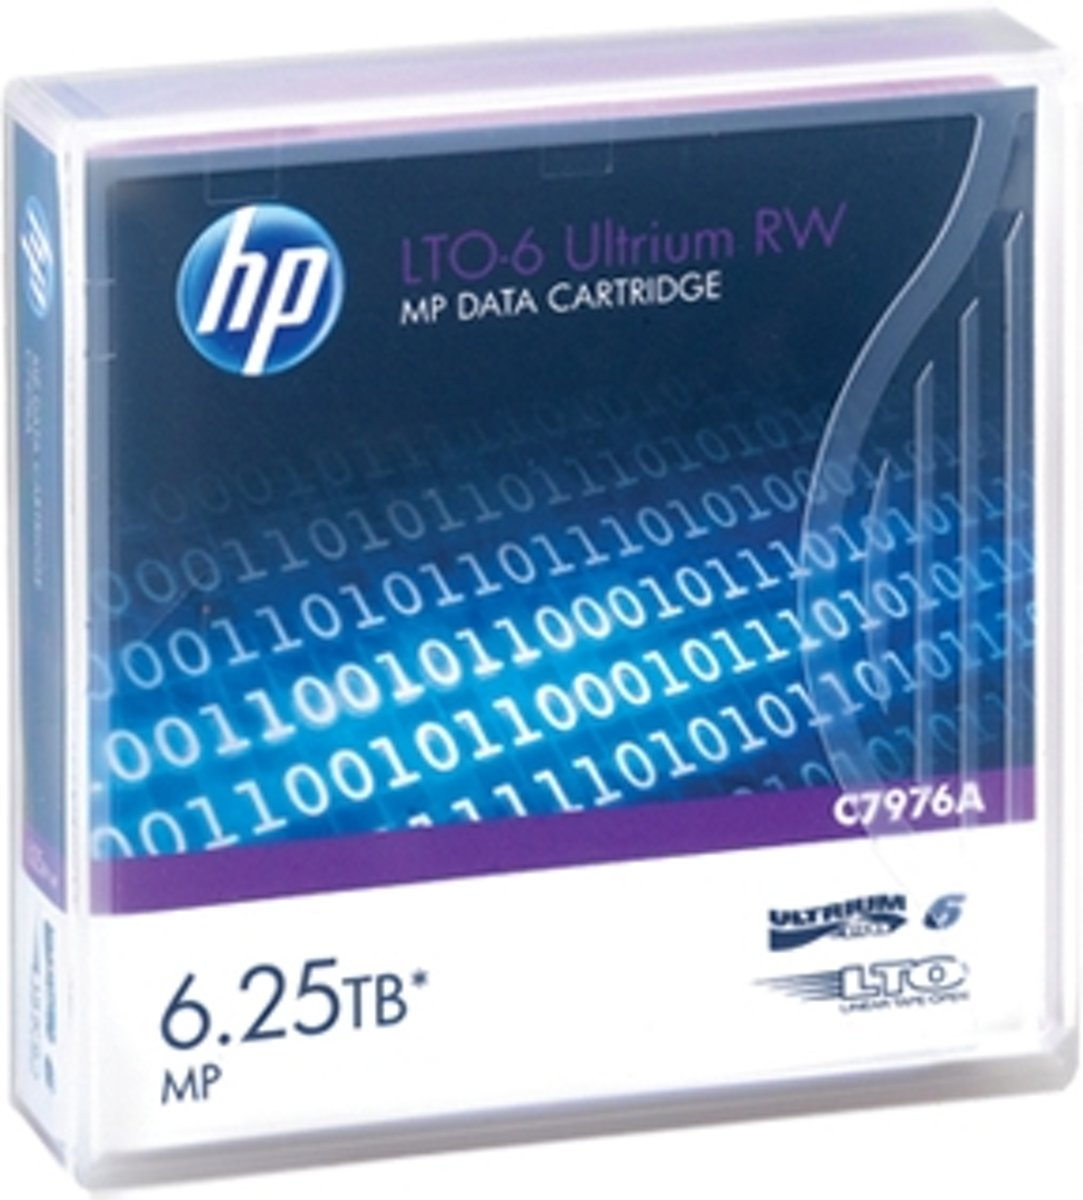 HP LTO-6 Ultrium 6.25 TB MP RW Eco Pack